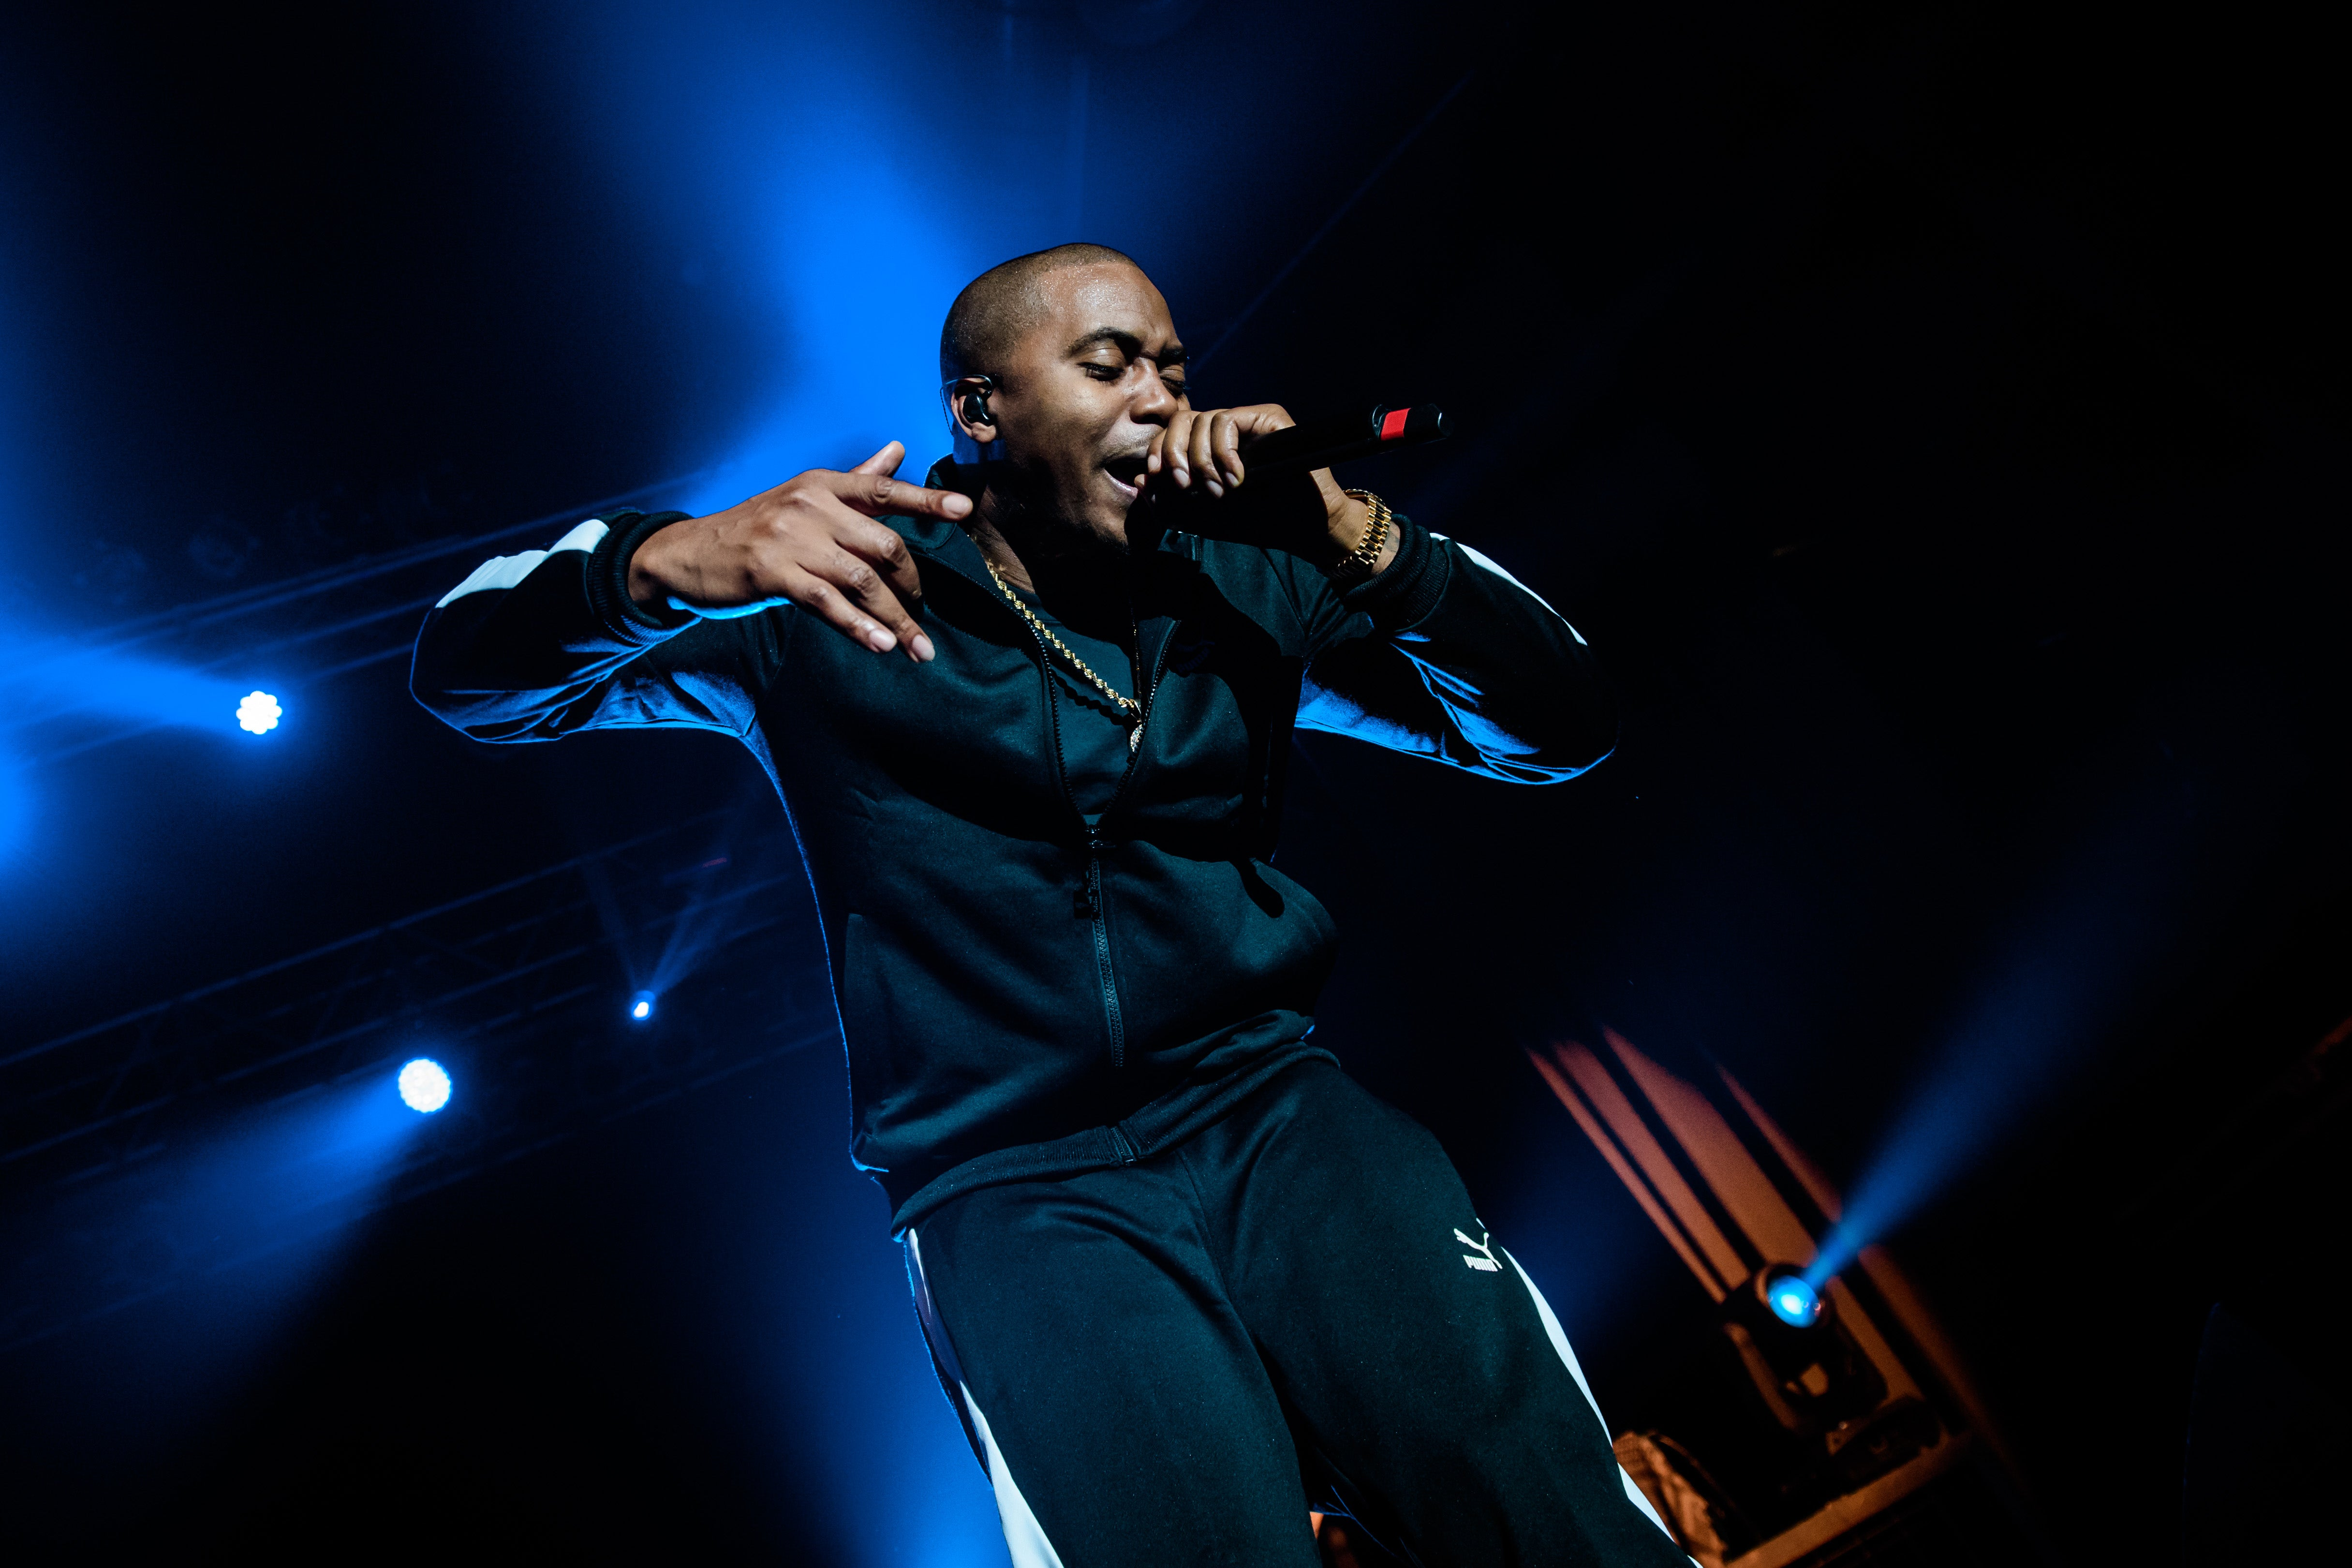 Nas Co-Signed This Dope Multiple Sclerosis Campaign